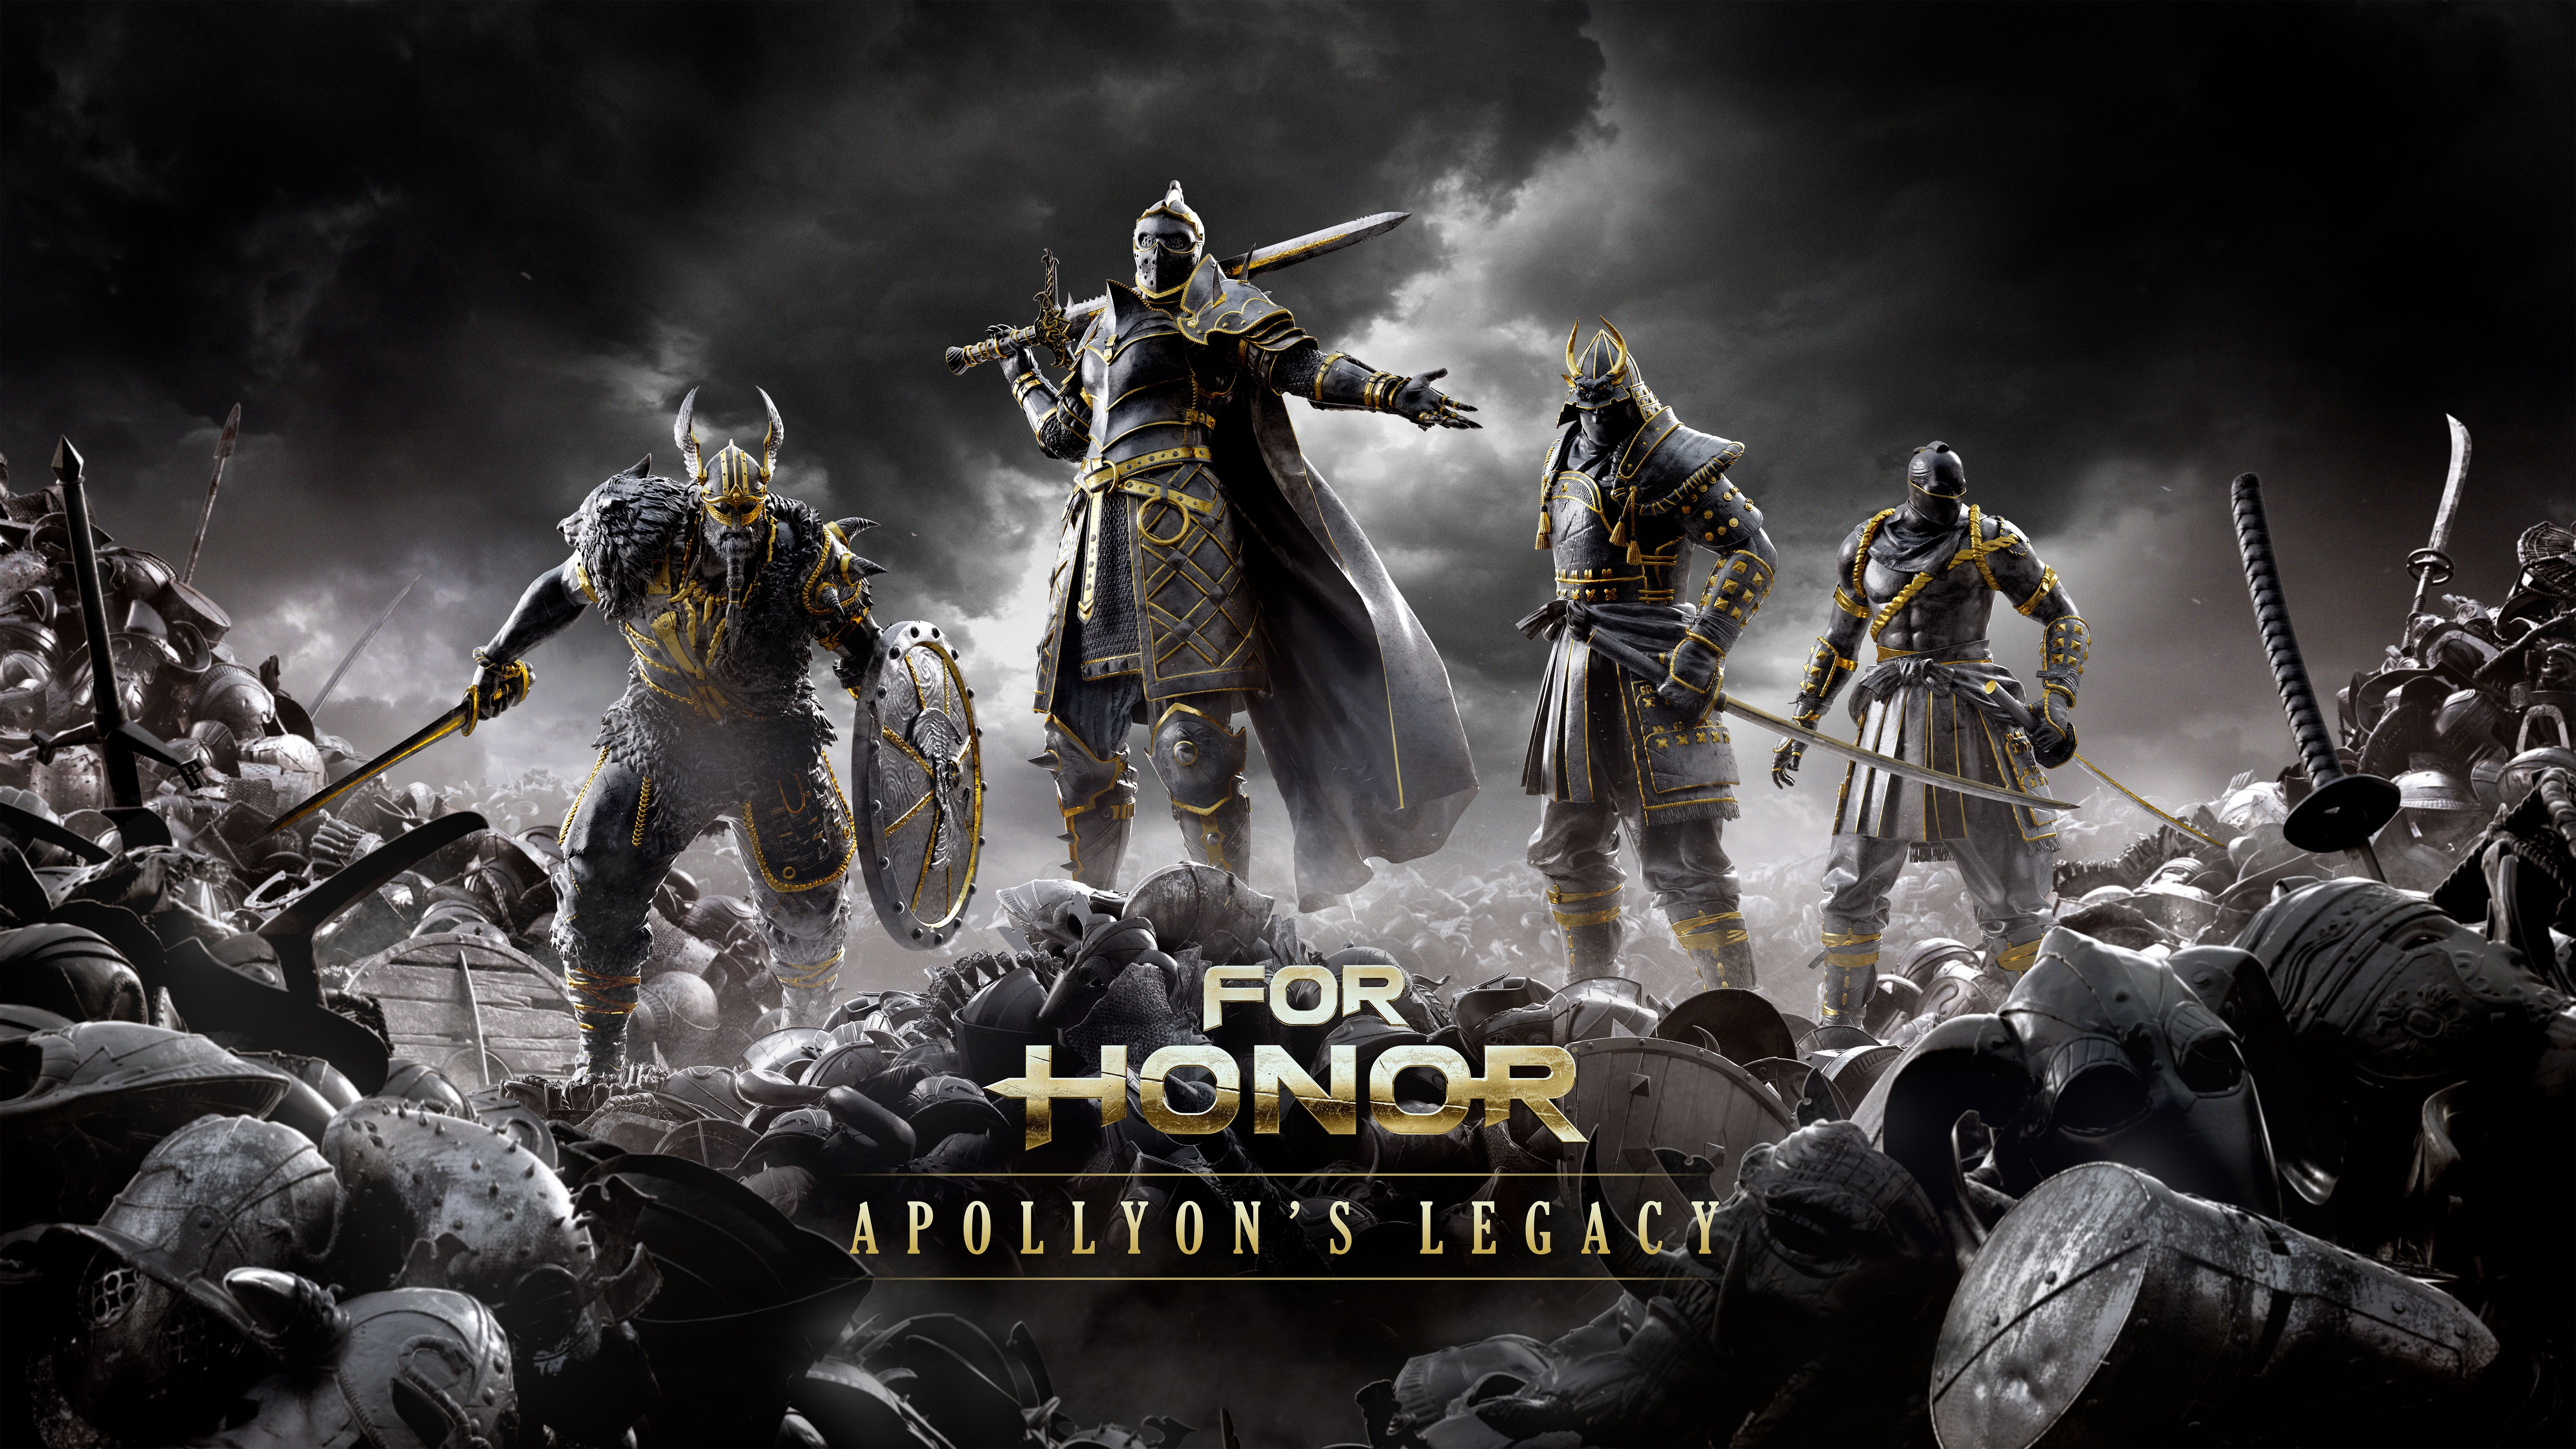 Get For Honor Apollyon Wallpaper Phone S2m At Movingwallpapers Net Dont Forget Drop Fo In 2020 Watercolor Wallpaper Iphone Iphone Wallpaper Hipster Gaming Wallpapers